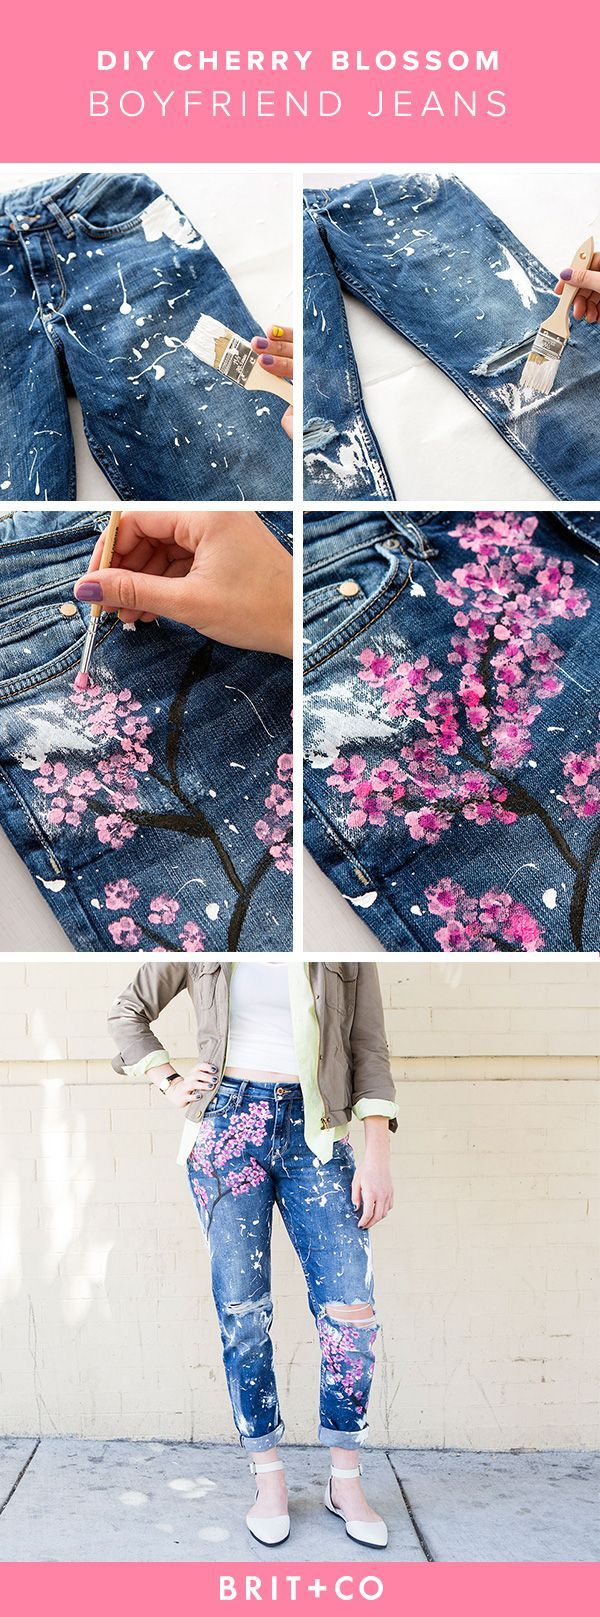 Photo of How to DIY Blake Lively's $500 Cherry Blossom Boyfriend Jeans